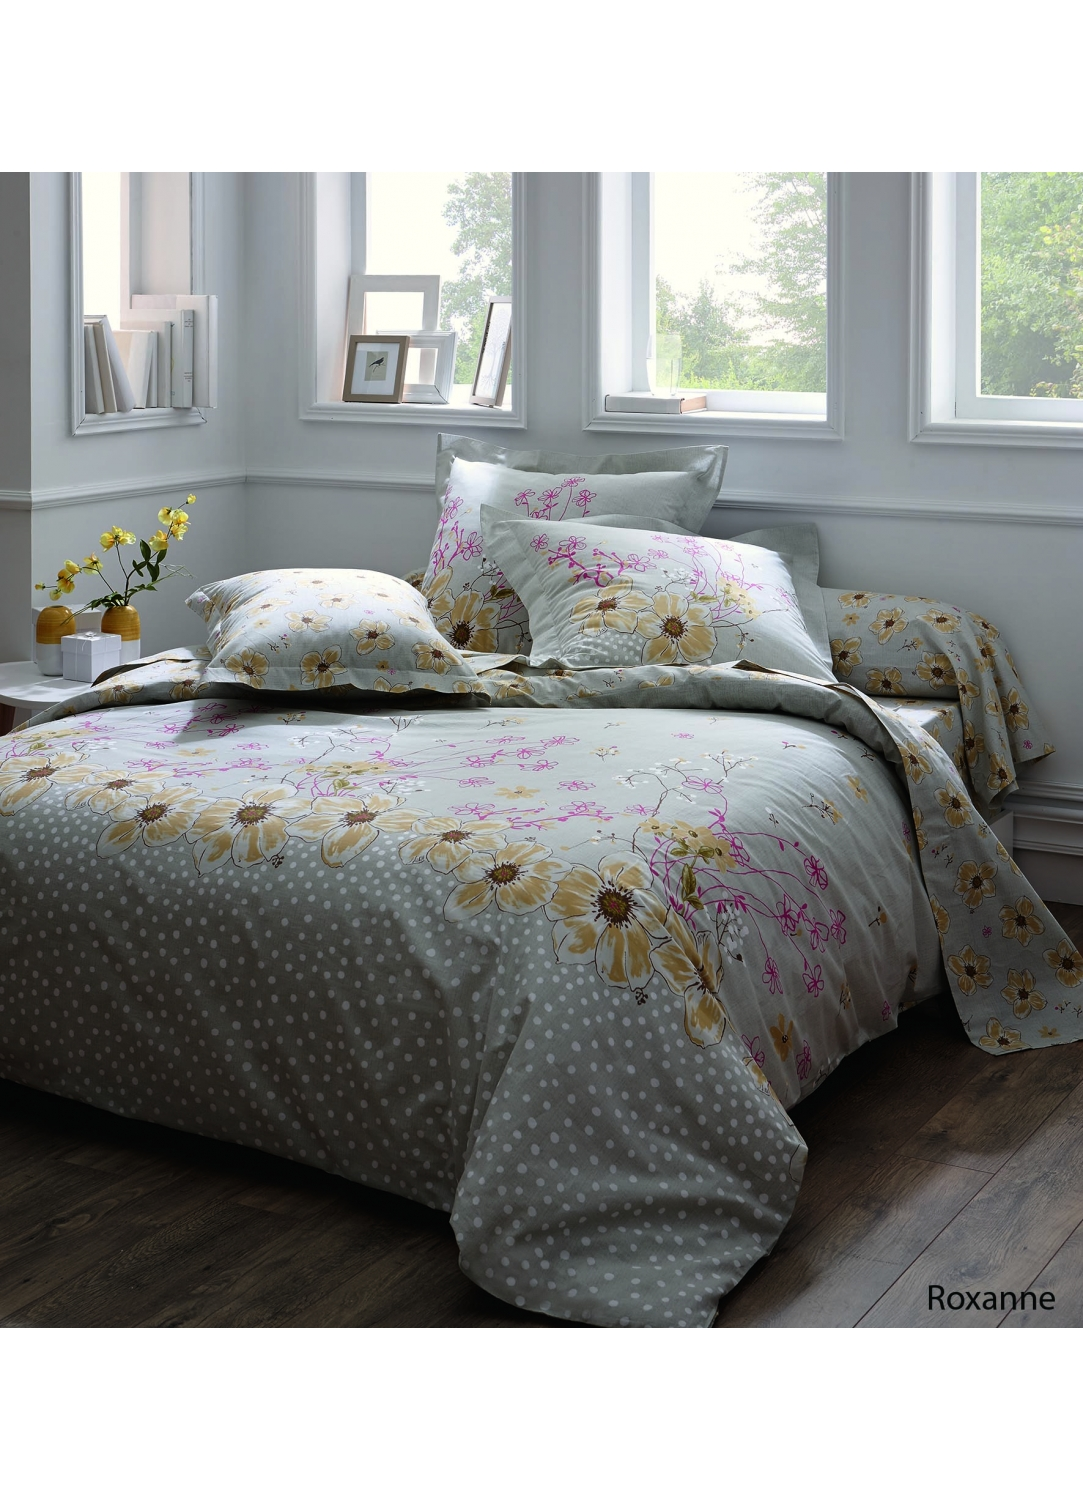 housse de couette roxanne imprim s fleurs jaunes multicolore homemaison. Black Bedroom Furniture Sets. Home Design Ideas